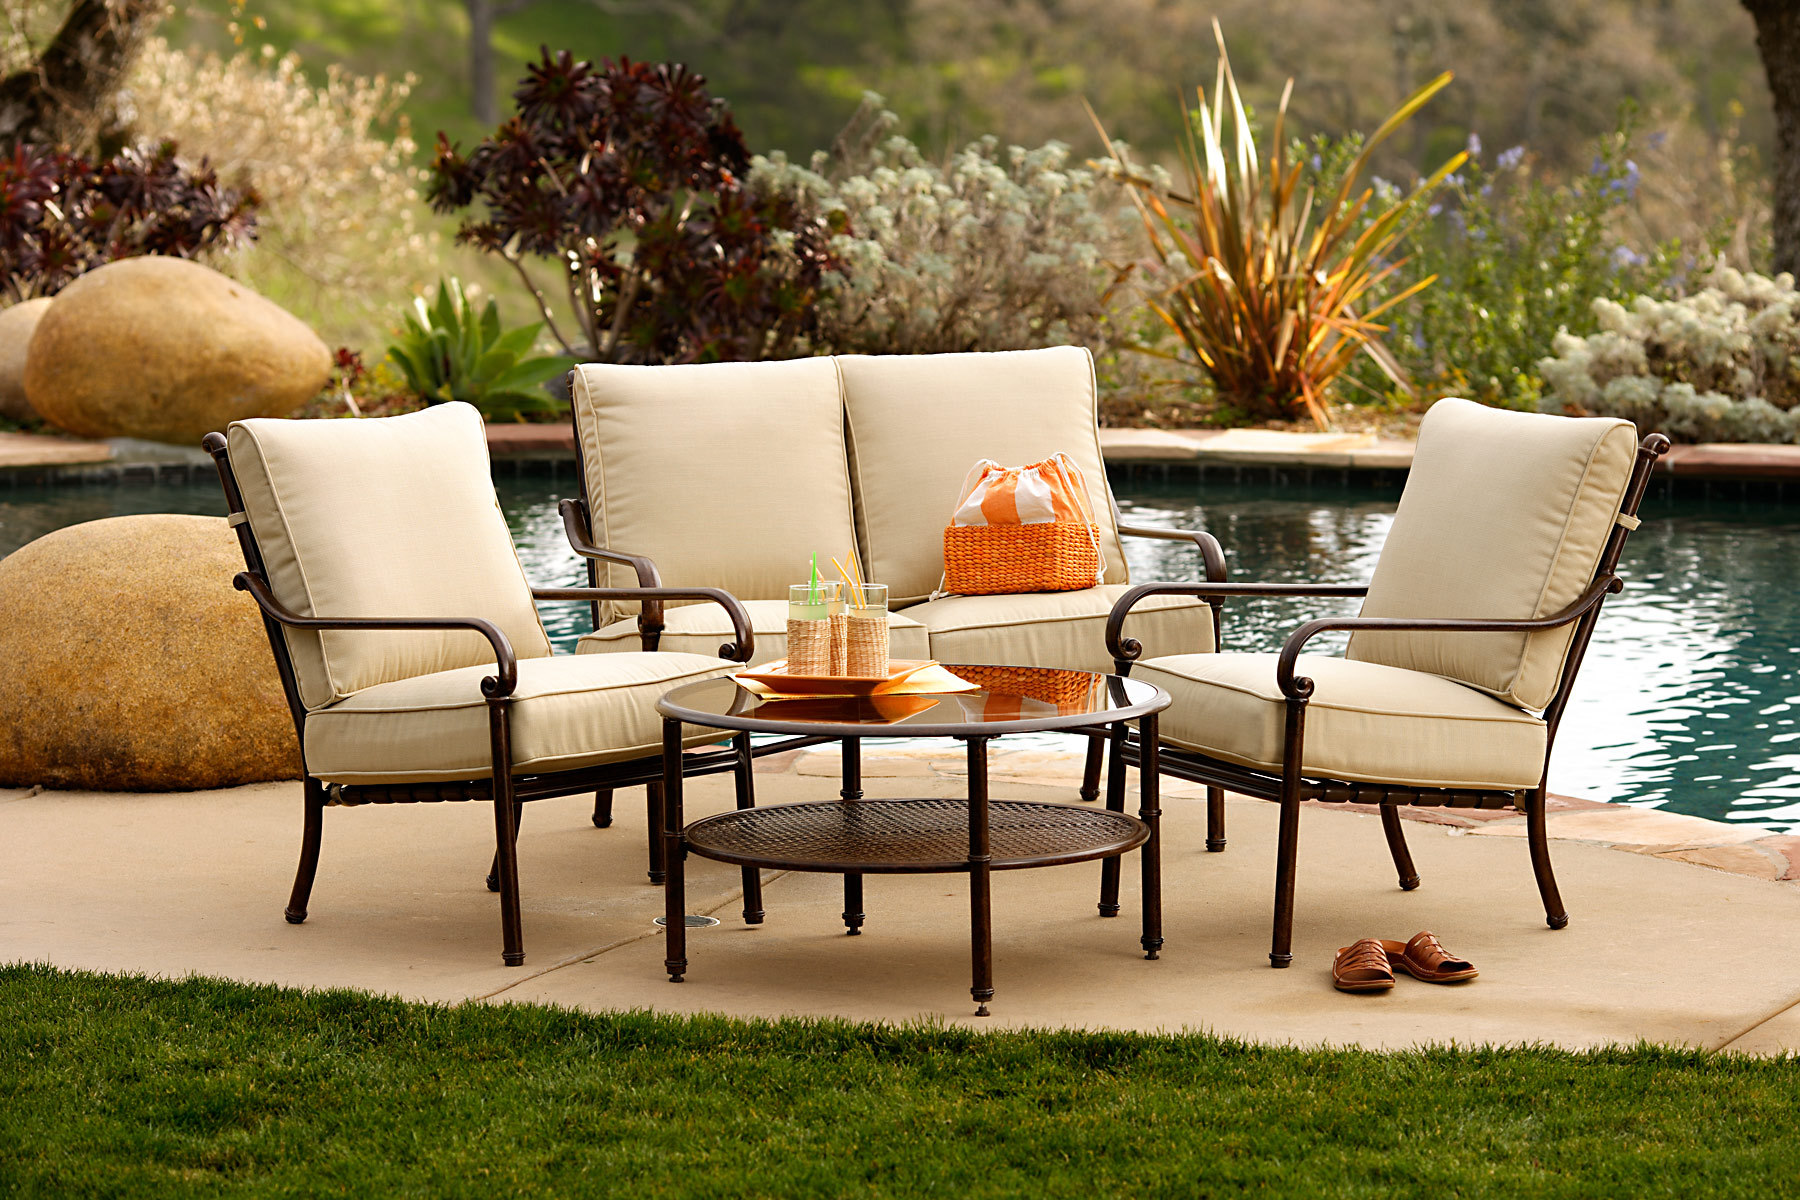 Small patio furniture eva furniture for Outdoor patio furniture